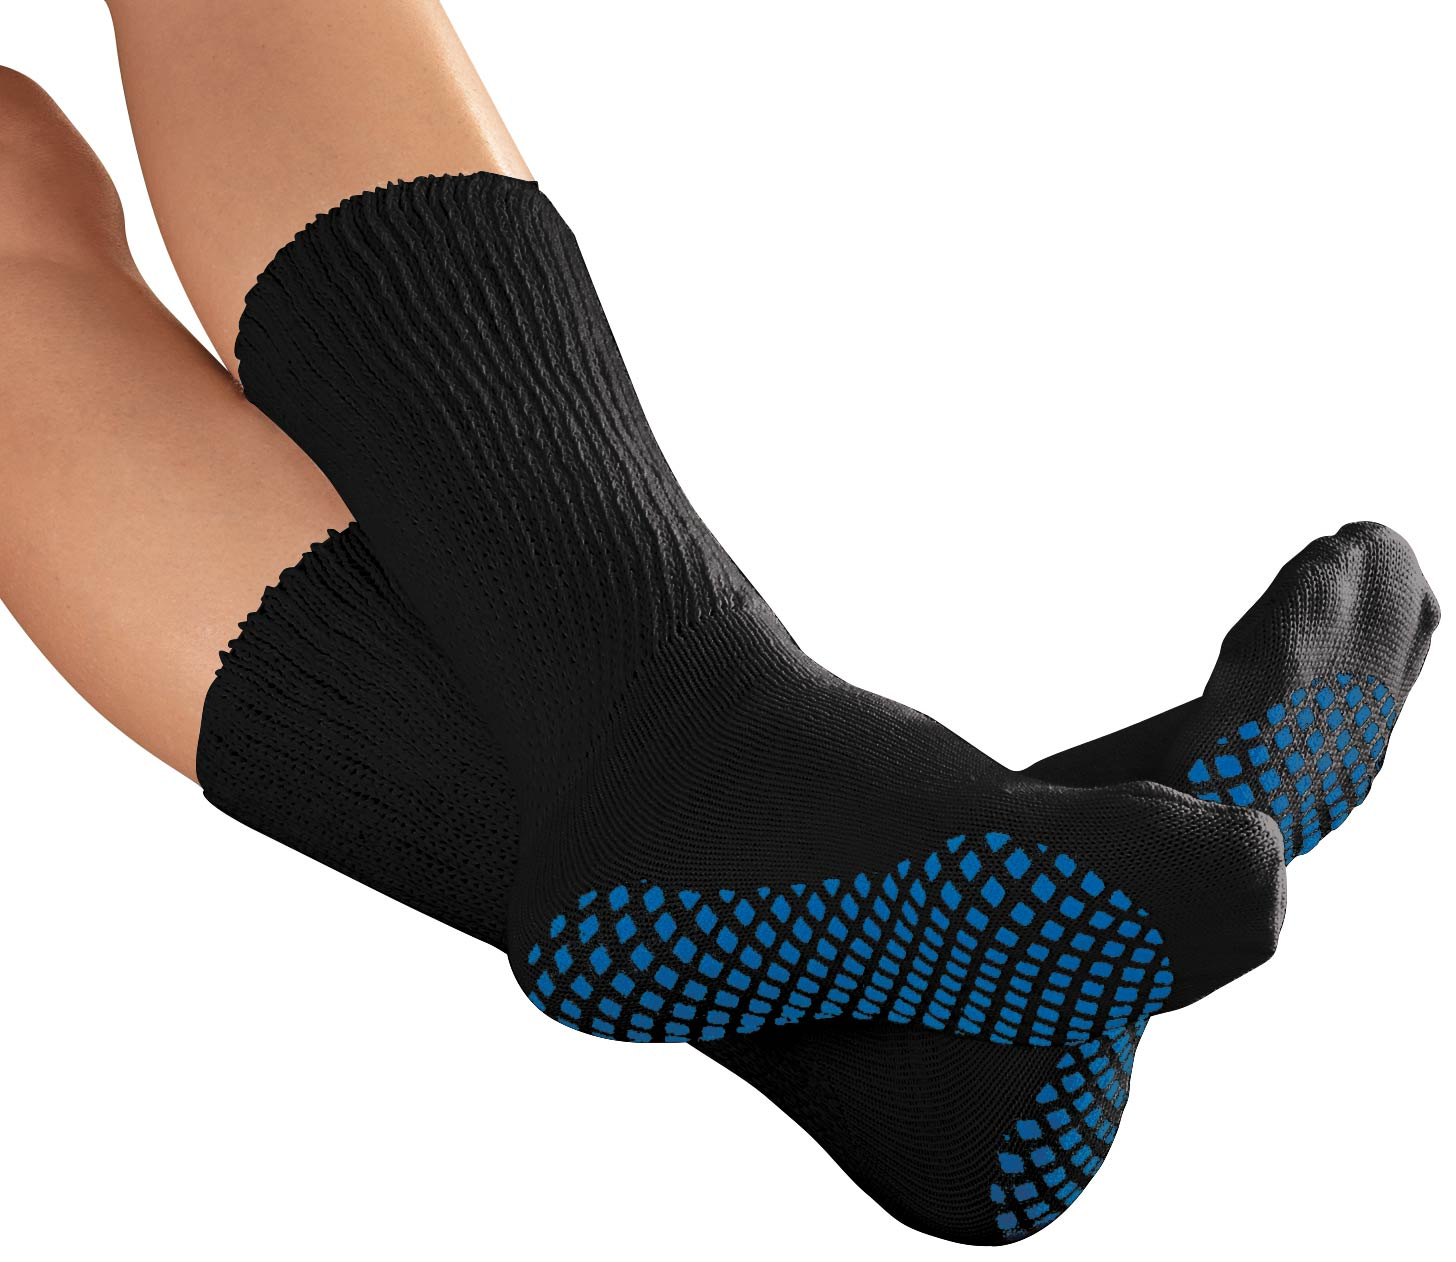 bafcb877ce2e8 Mens Socks With Grippers - Image Sock and Collections Parklakelodge.Com